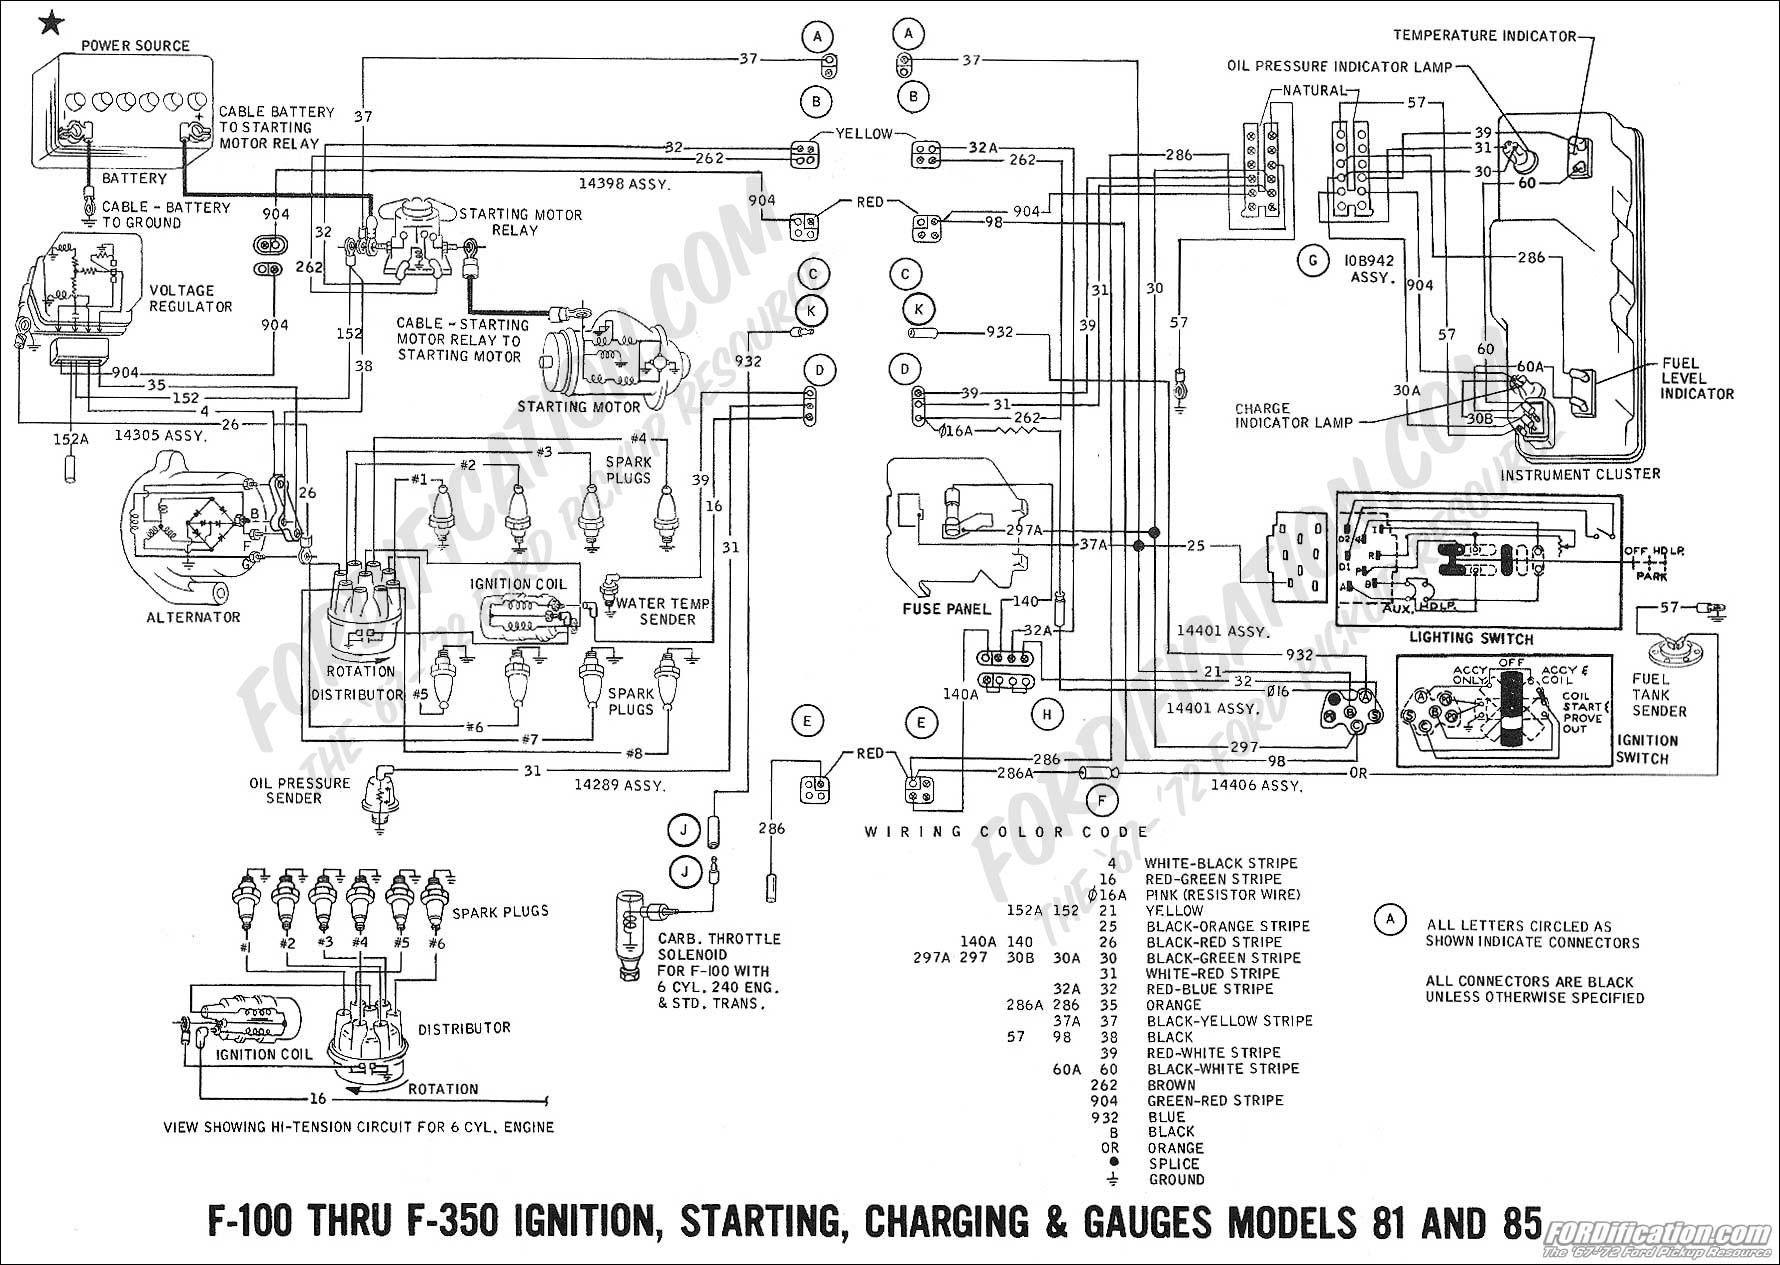 1979 Chevy Nova Wiring Diagram Library Car Audio Kenwood Kmrd358 Truck Dash Chevrolet Ford F100 Of